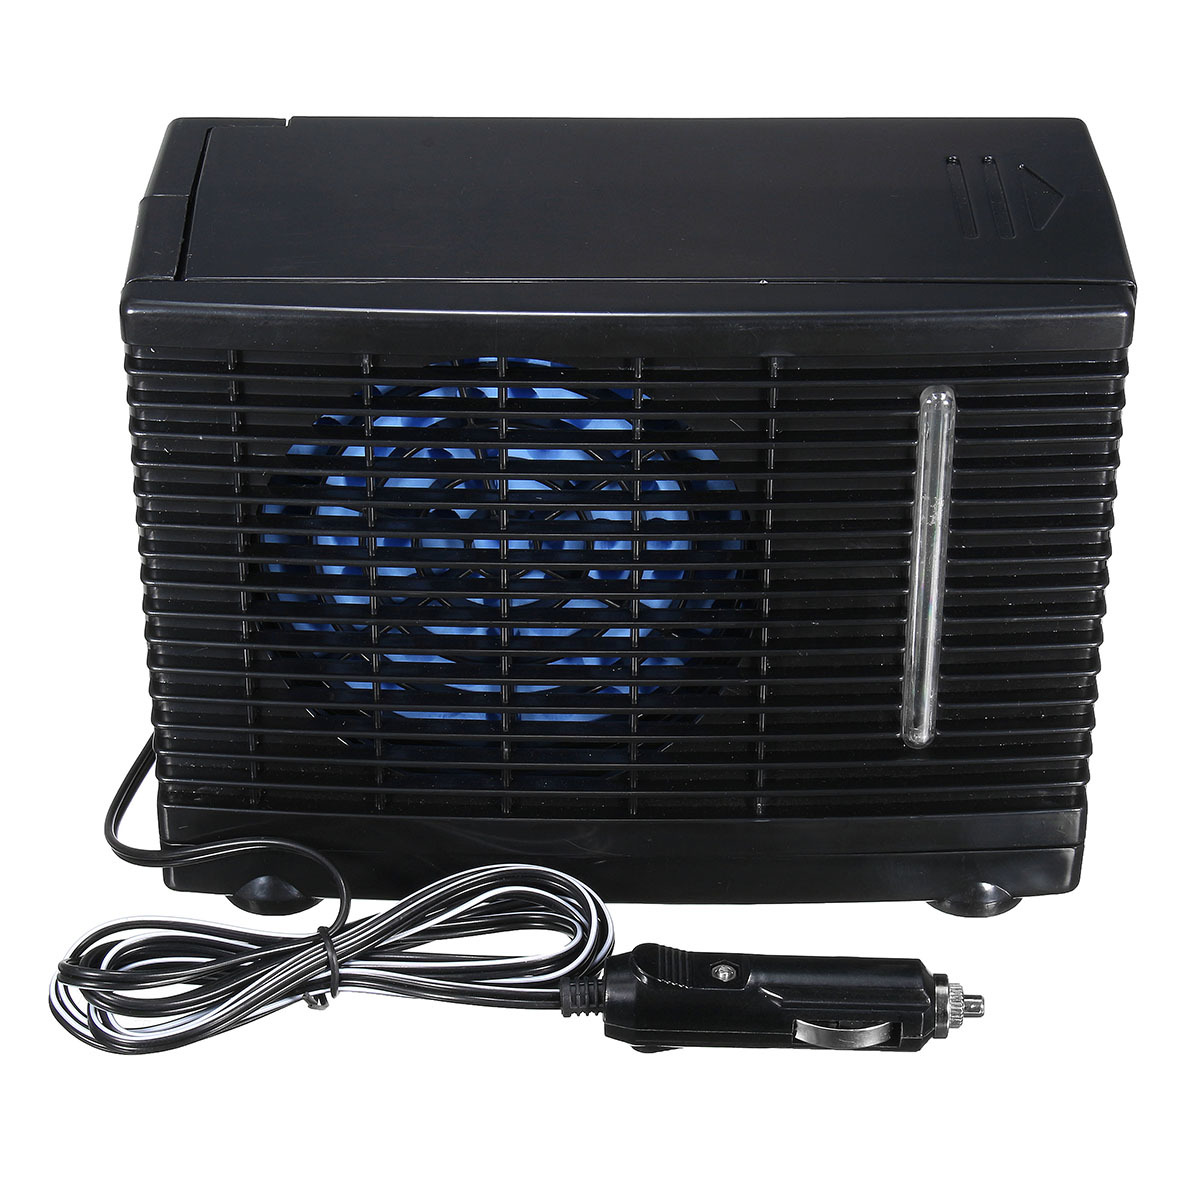 #1D61AE 12V Portable Home Car Cooler Cooling Fan Water Ice  Most Recent 13600 Portable Air Conditioning Units For Cars image with 1200x1200 px on helpvideos.info - Air Conditioners, Air Coolers and more